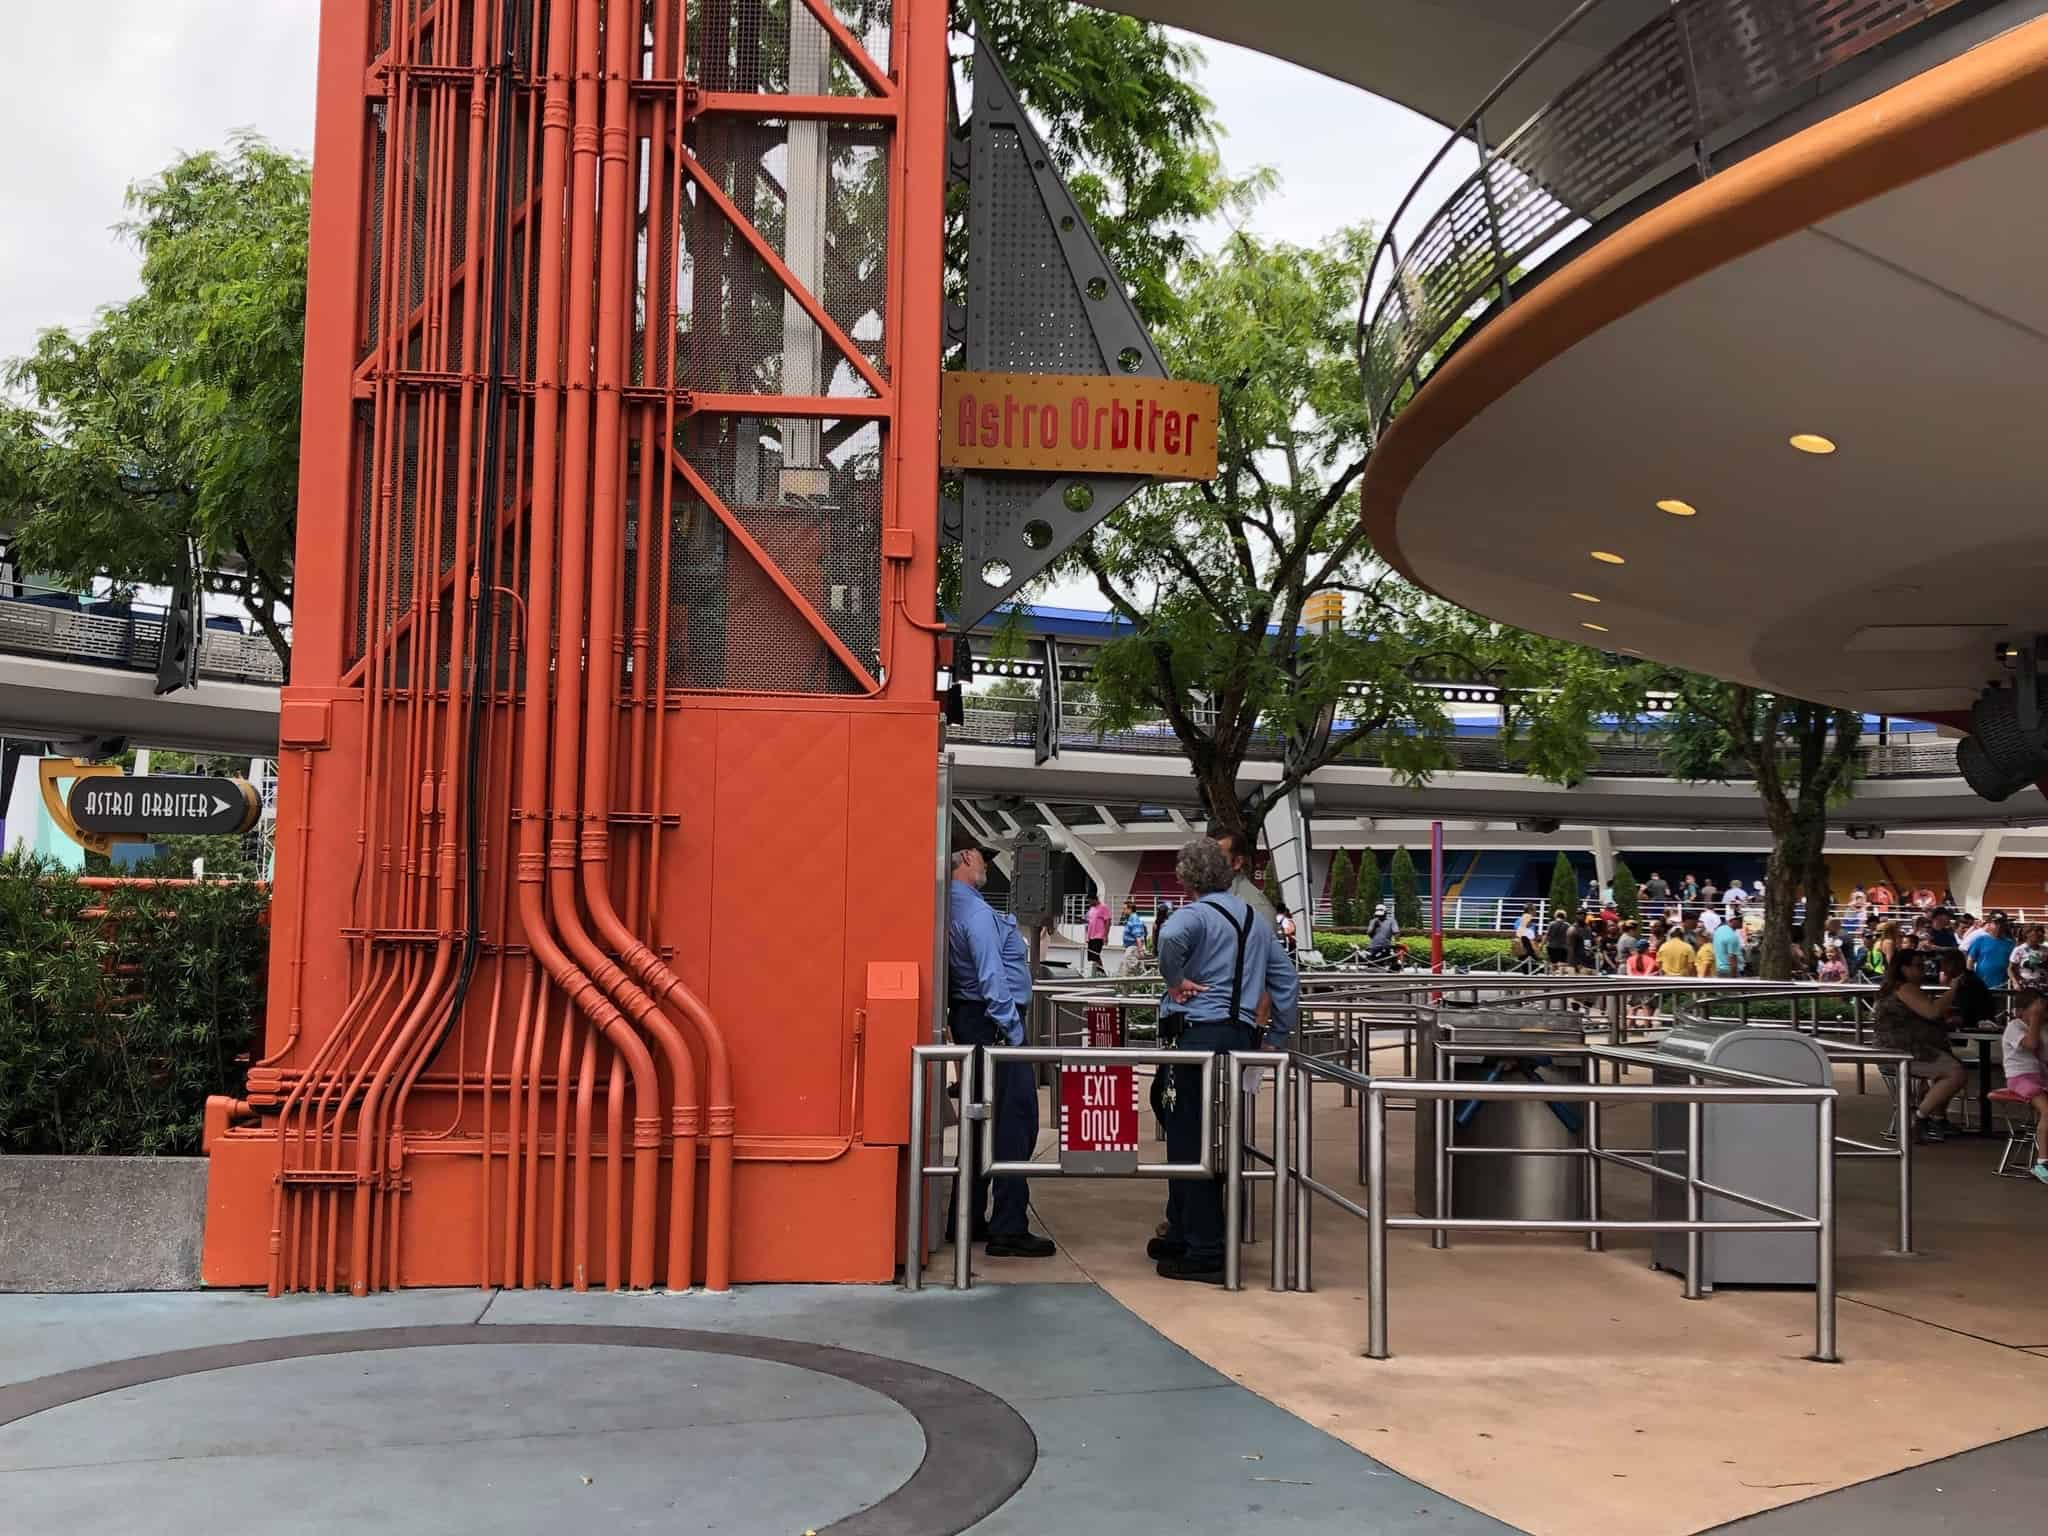 Maintenance cast members can be seen all around the attraction.